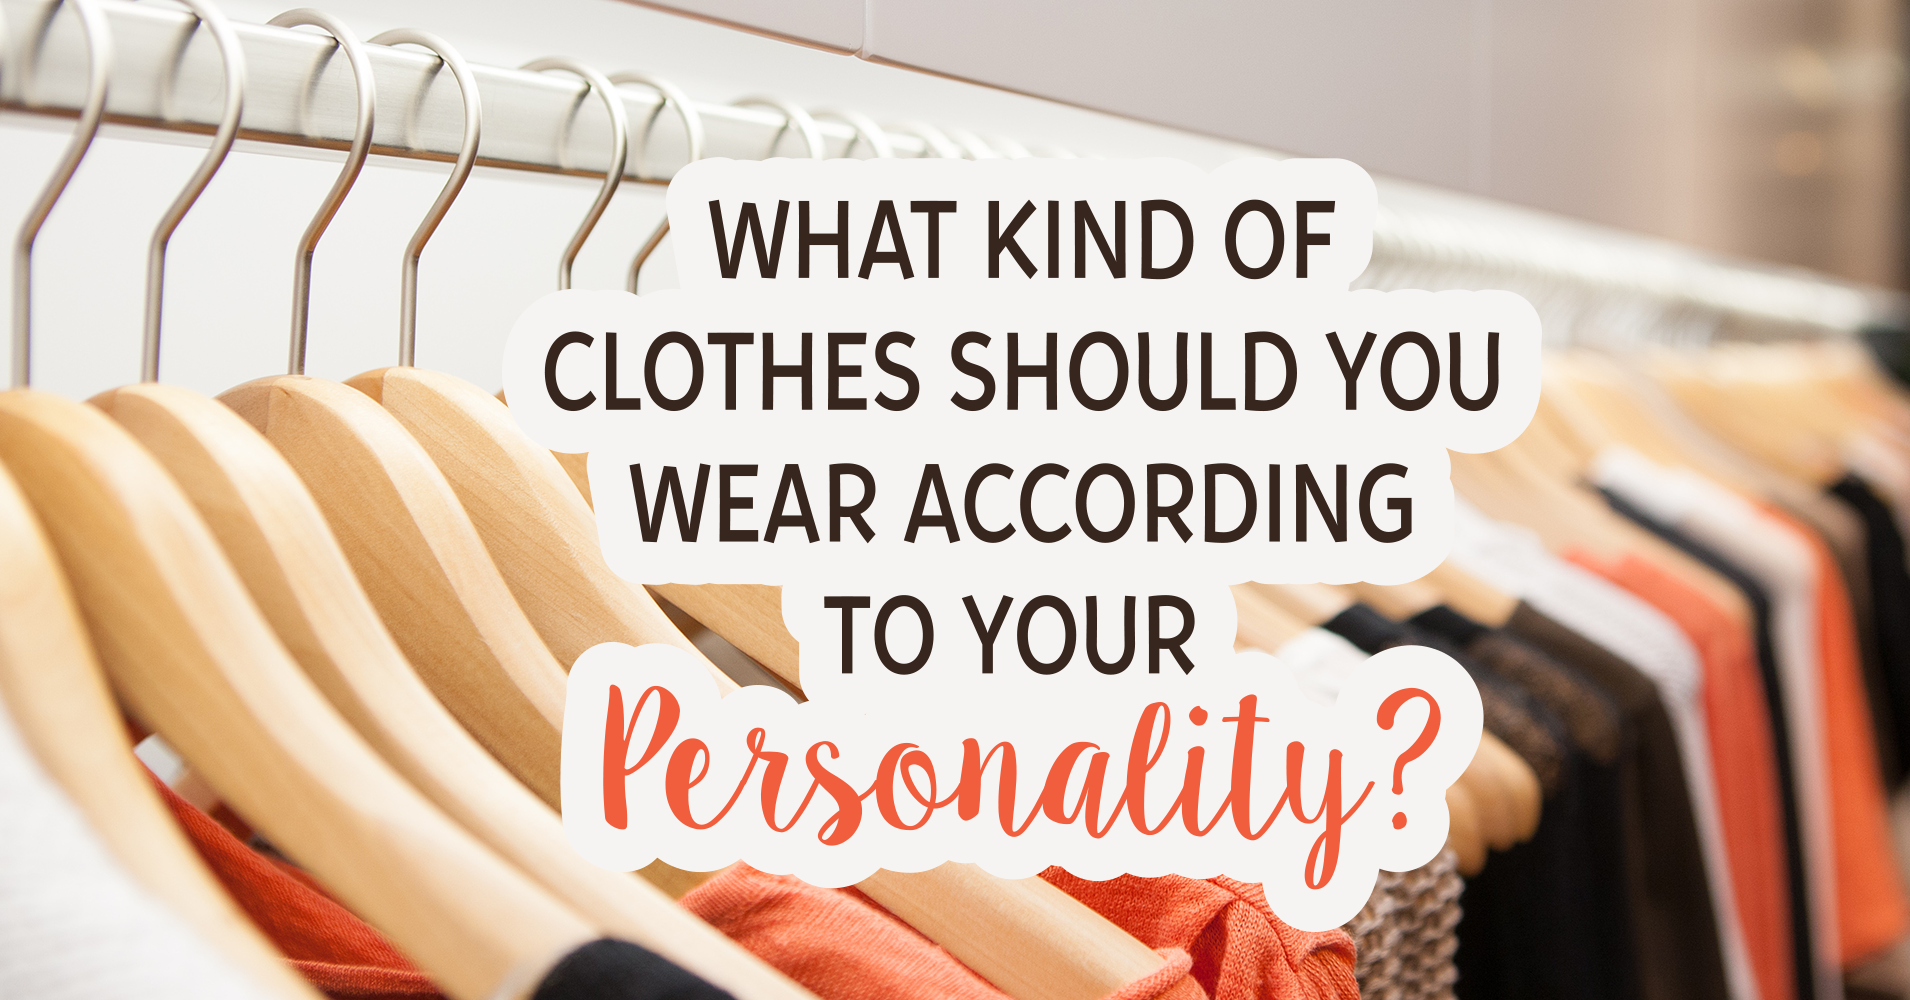 What Kind Of Clothes Should You Wear According To Your Personality Quiz